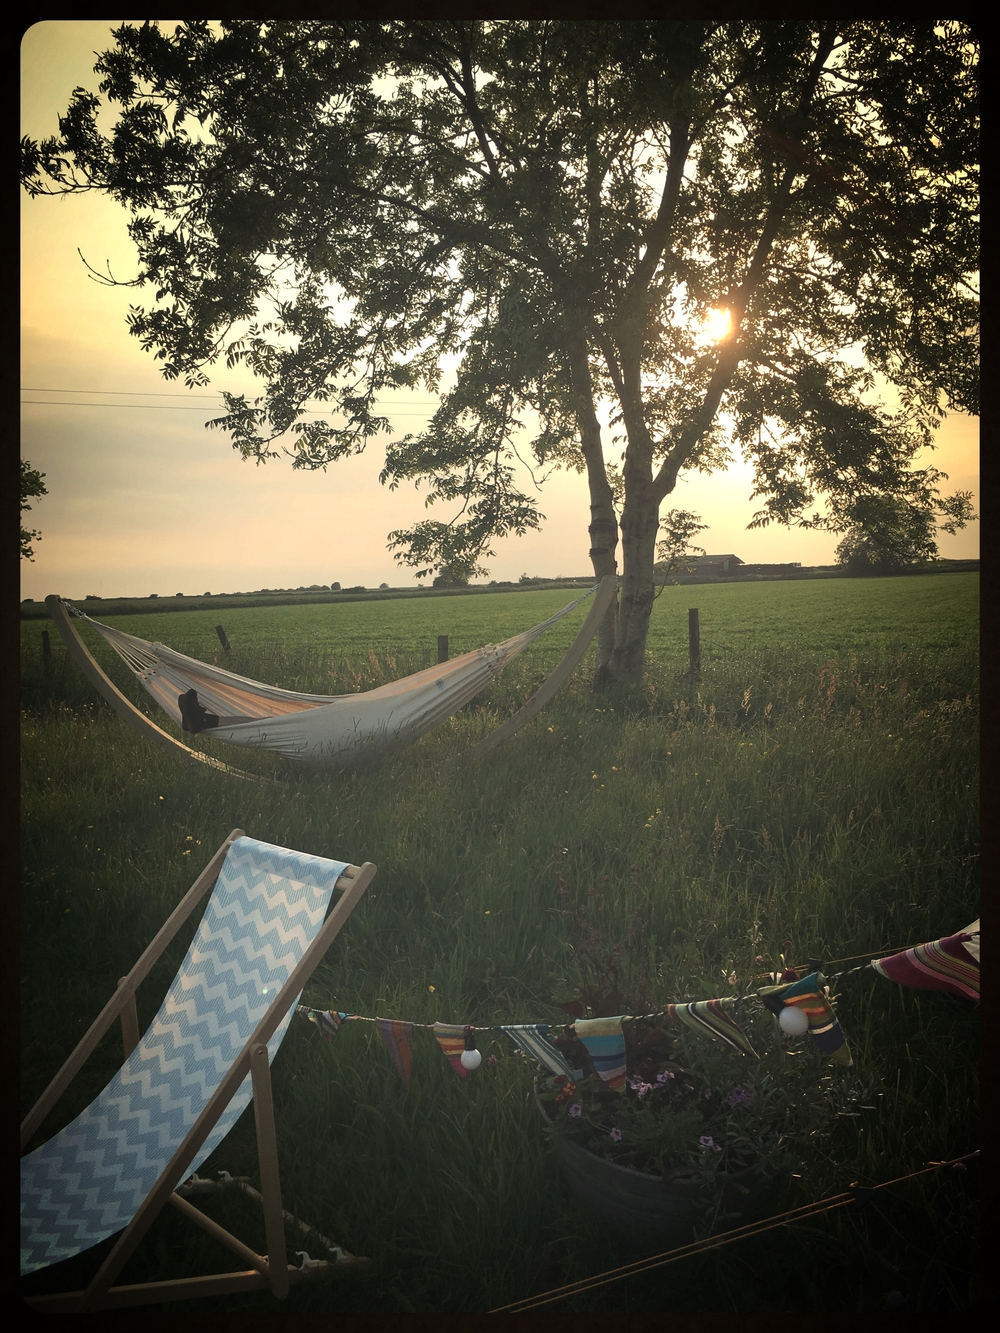 Huge hammocks for relaxing